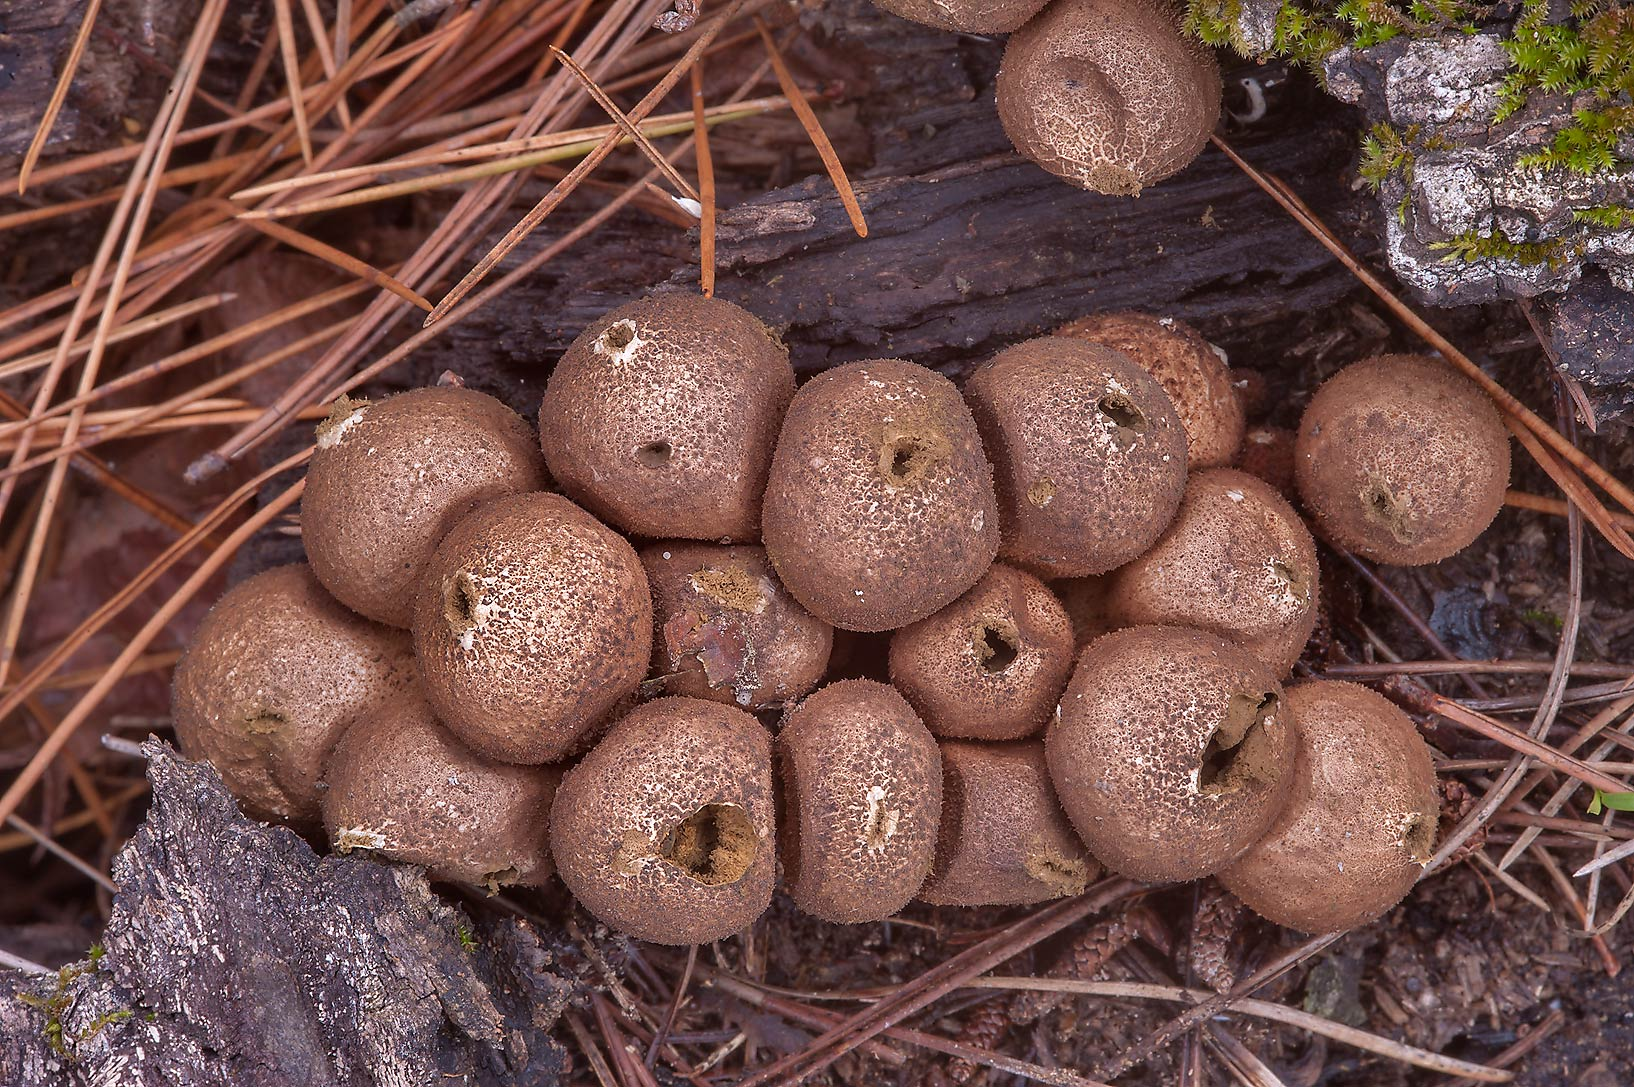 Dry brown pear-shaped puffball mushrooms (Lycoperdon pyriforme) in Huntsville Park. Texas